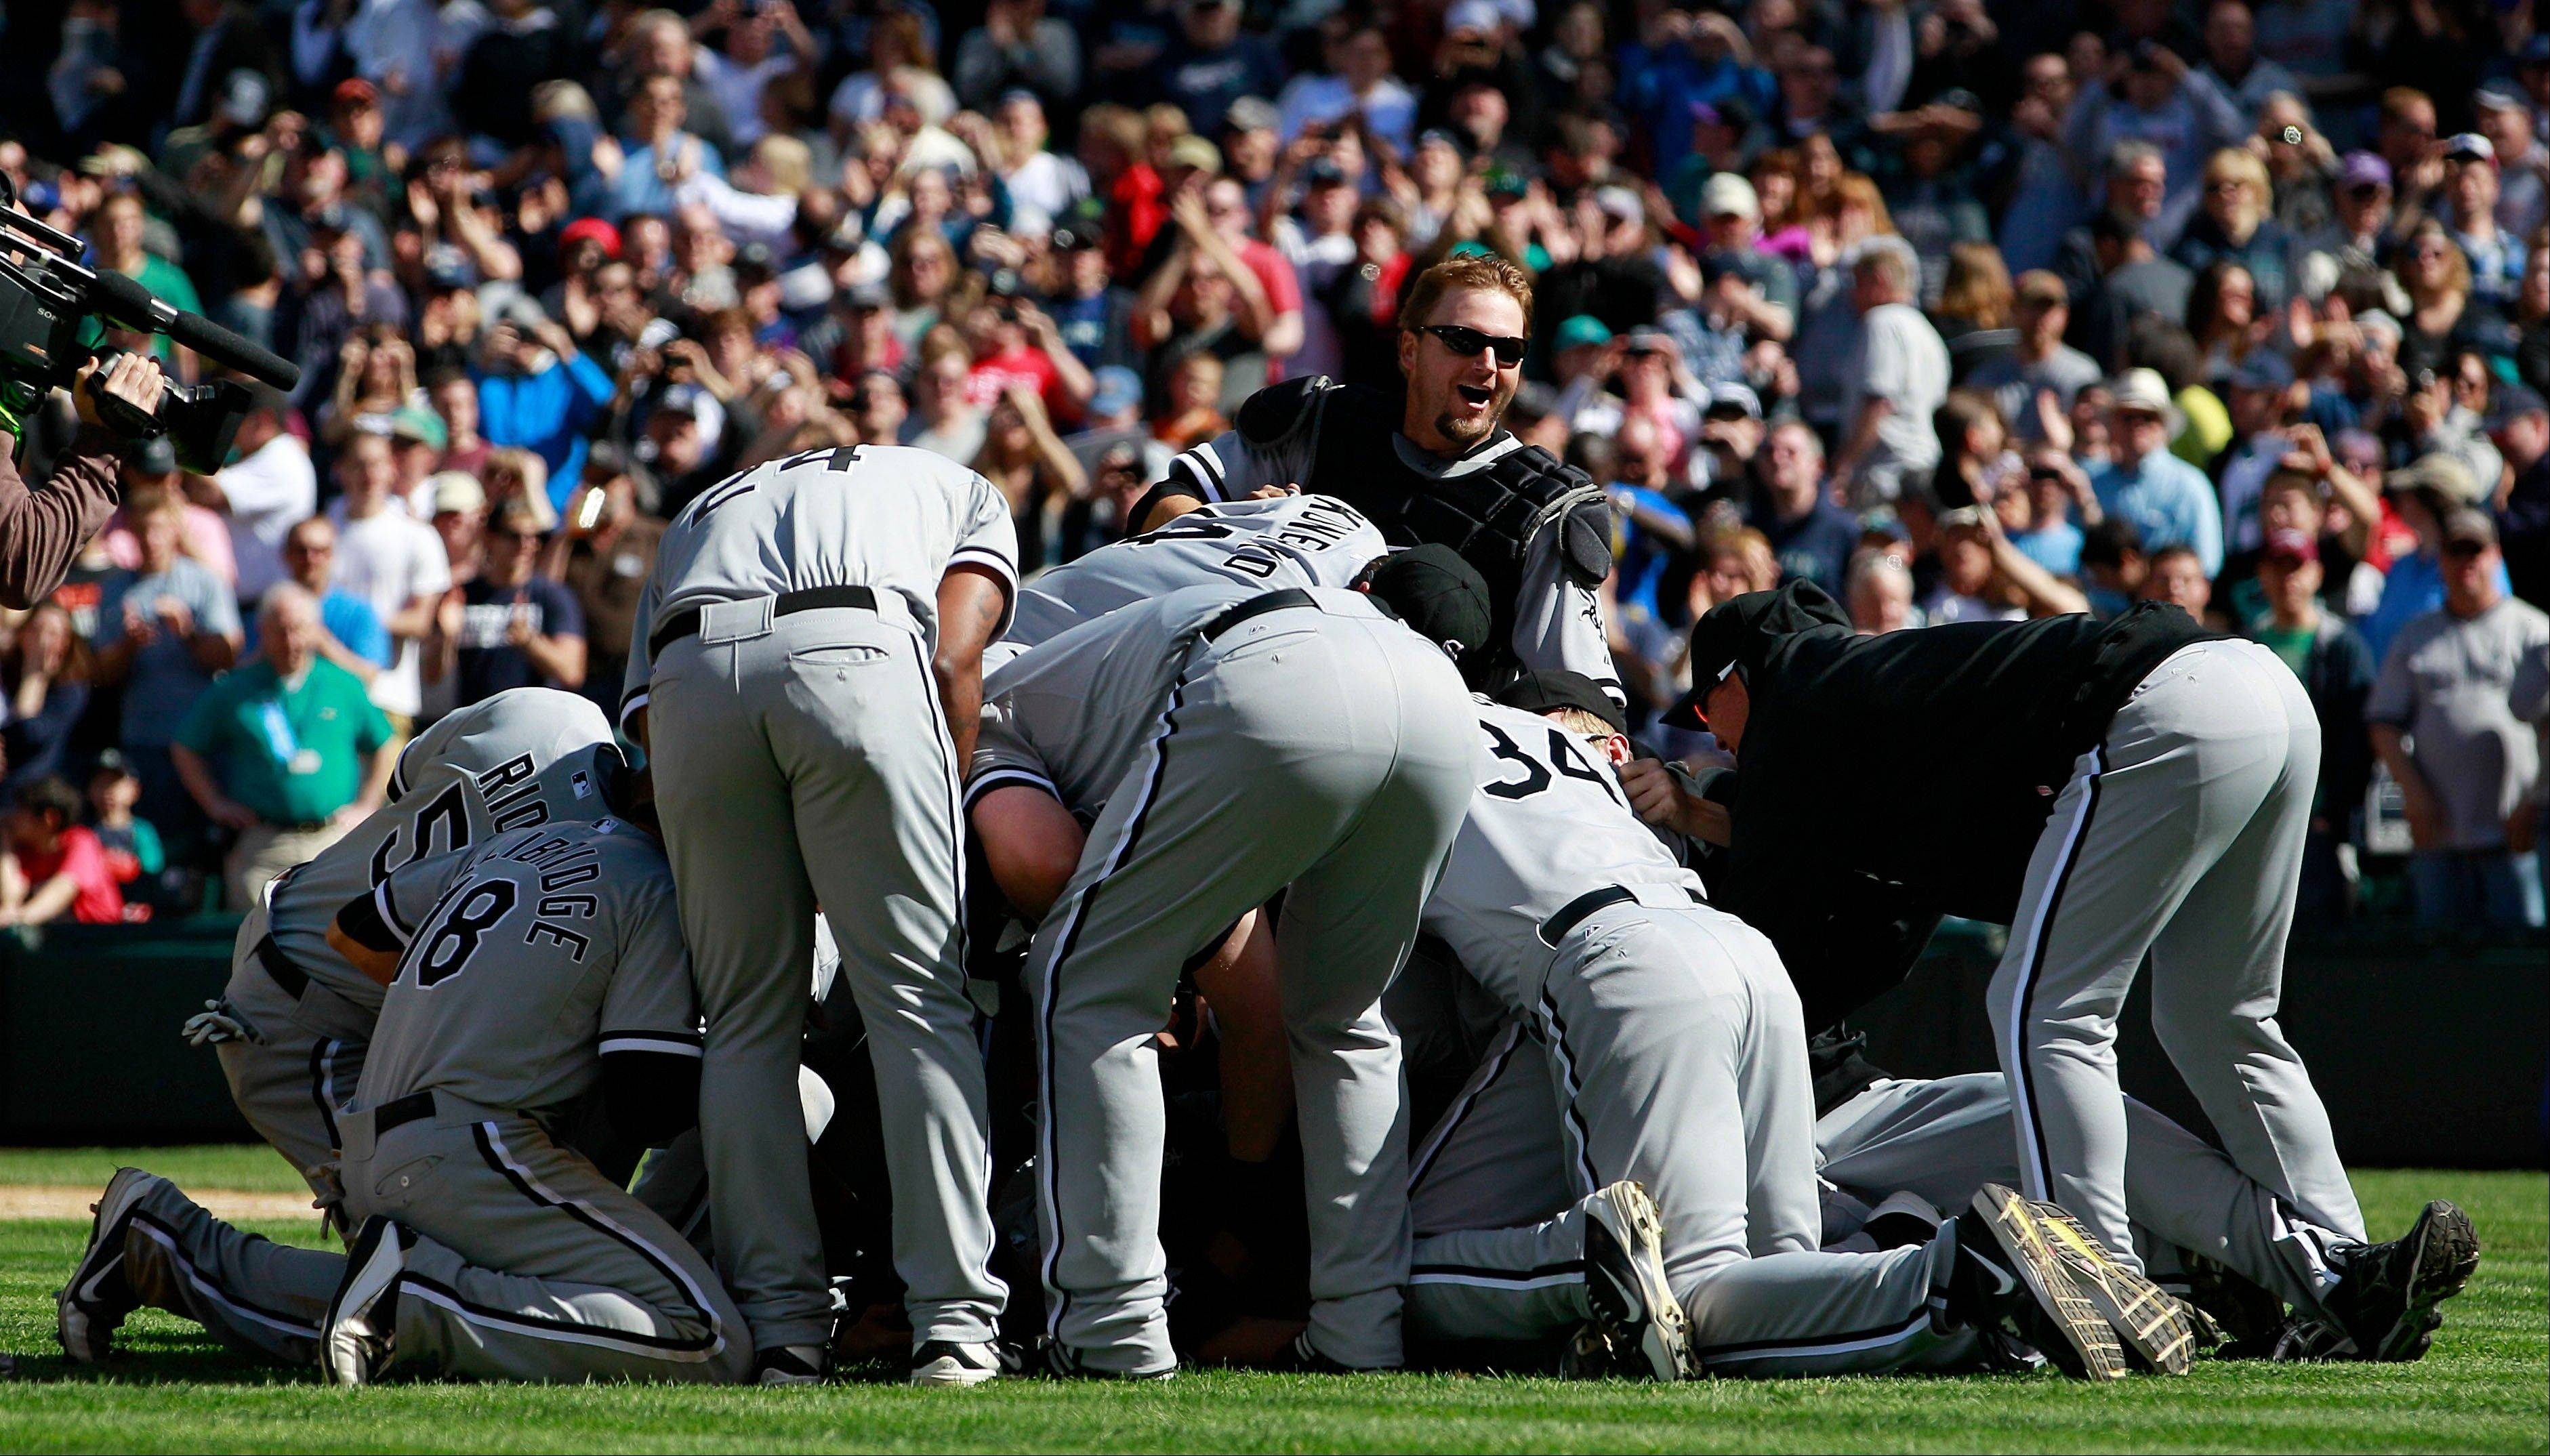 White Sox starting pitcher Phil Humber is mobbed Saturday after pitching a perfect game.